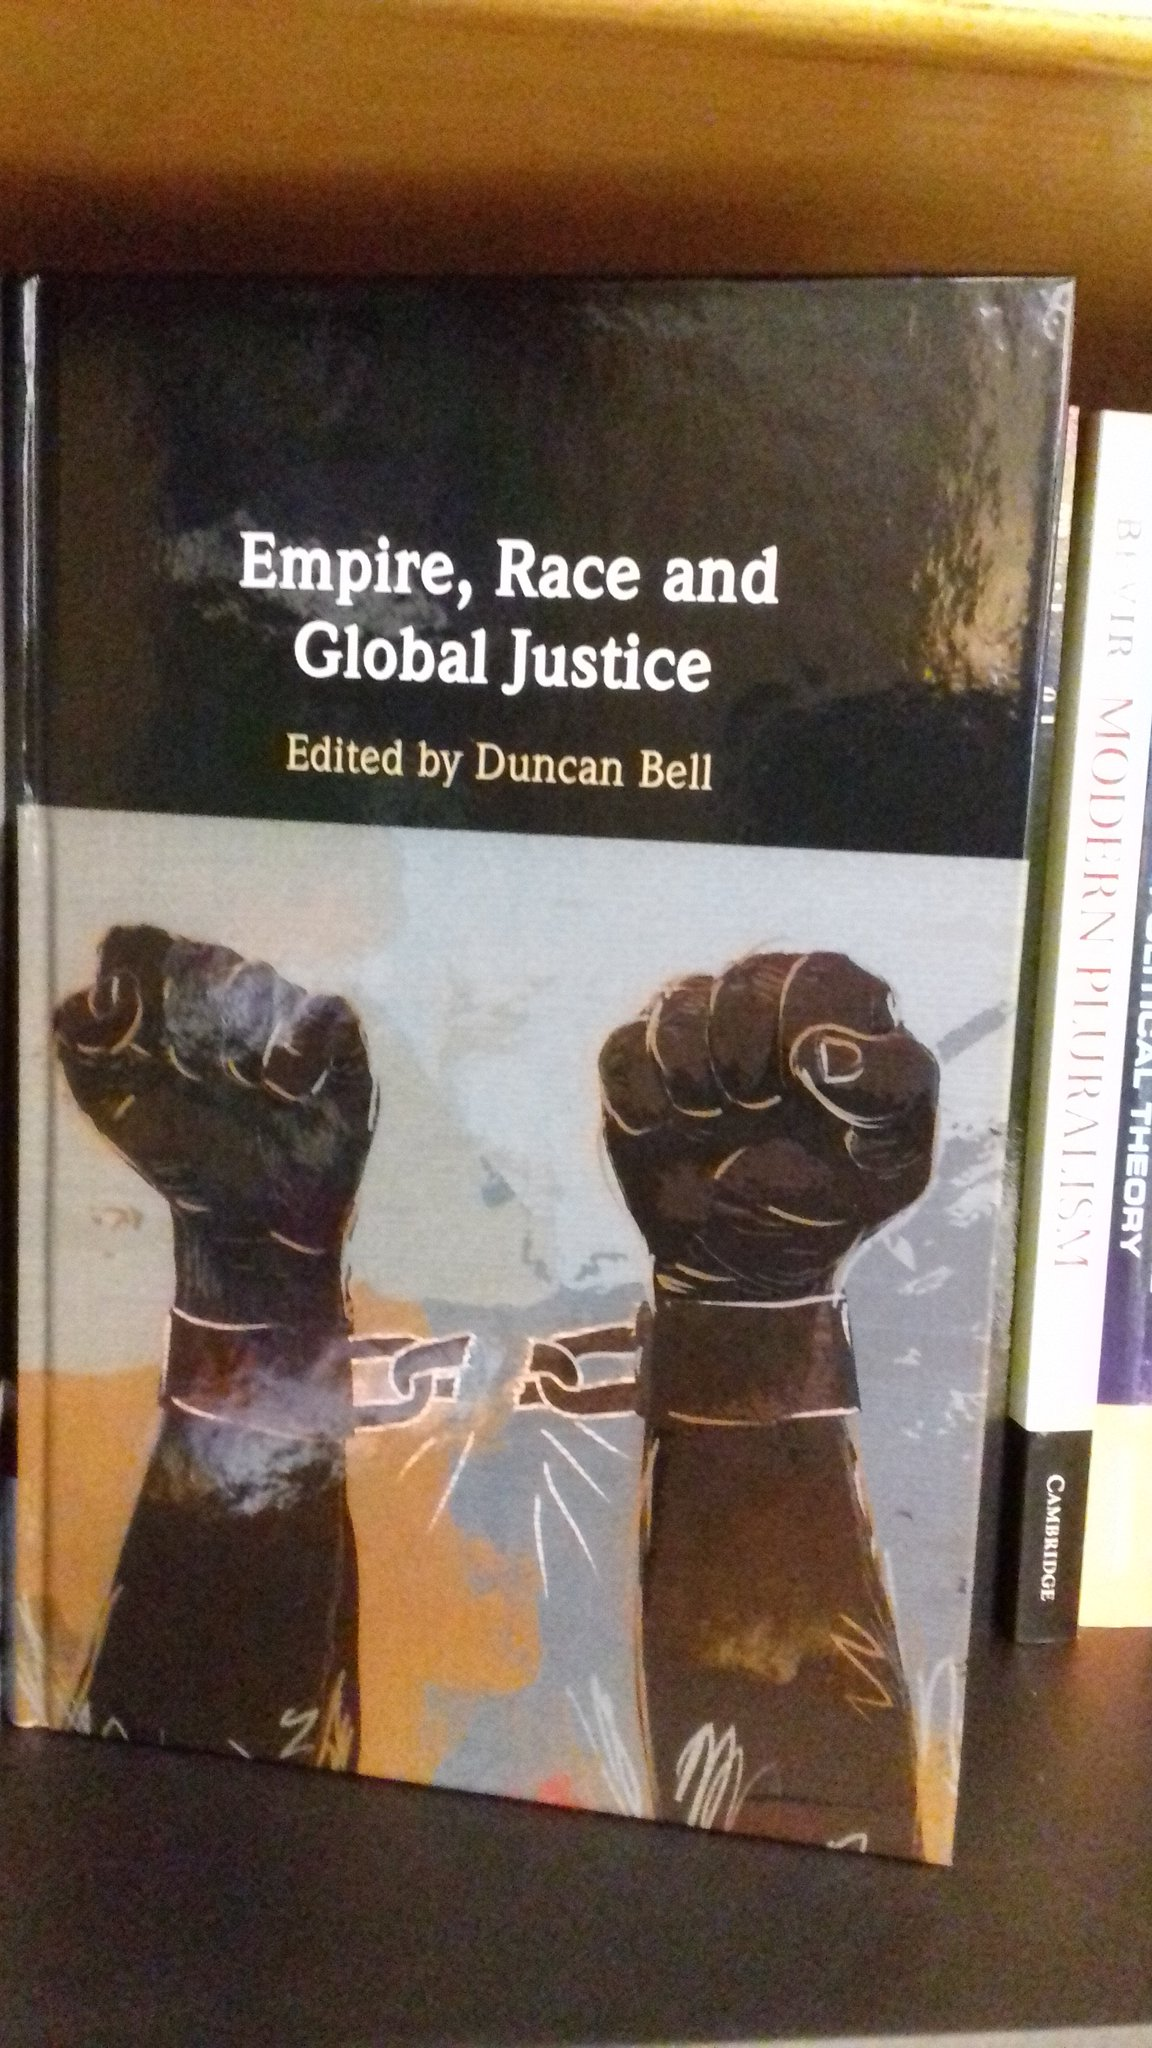 RT @DrDuncanBell: Just published! Delighted…